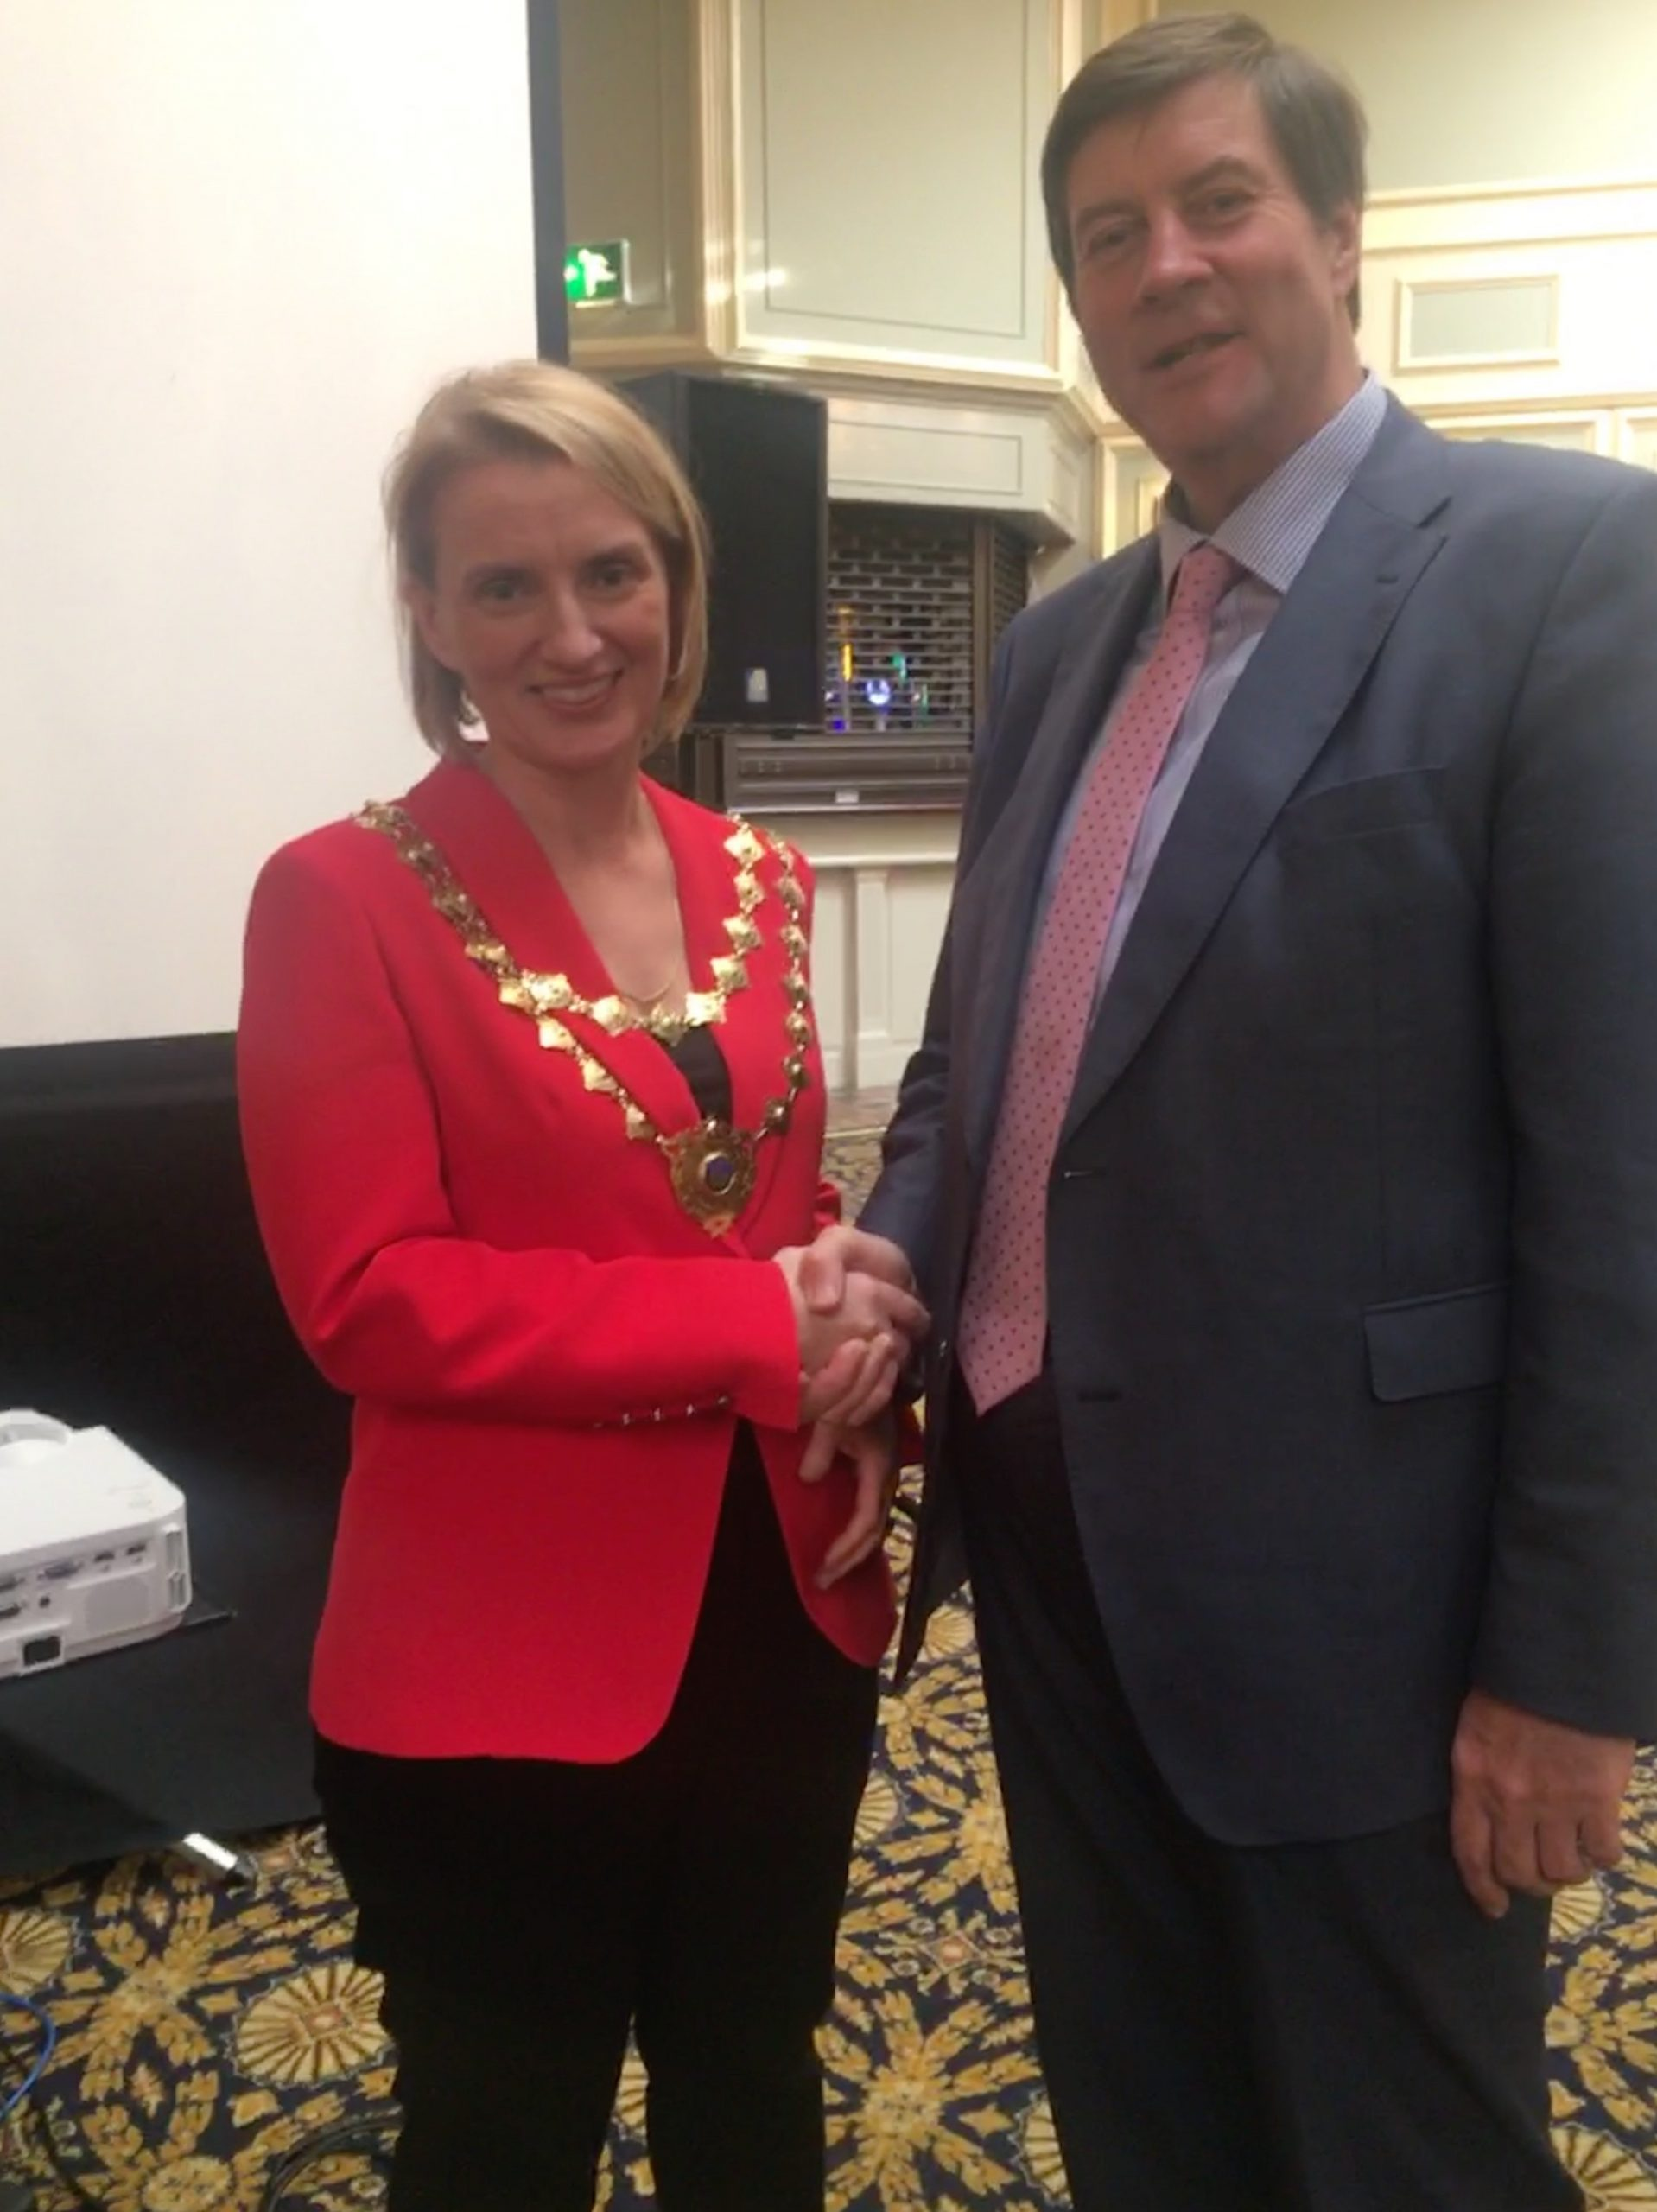 New President elected at Waterford Chamber of Commerce